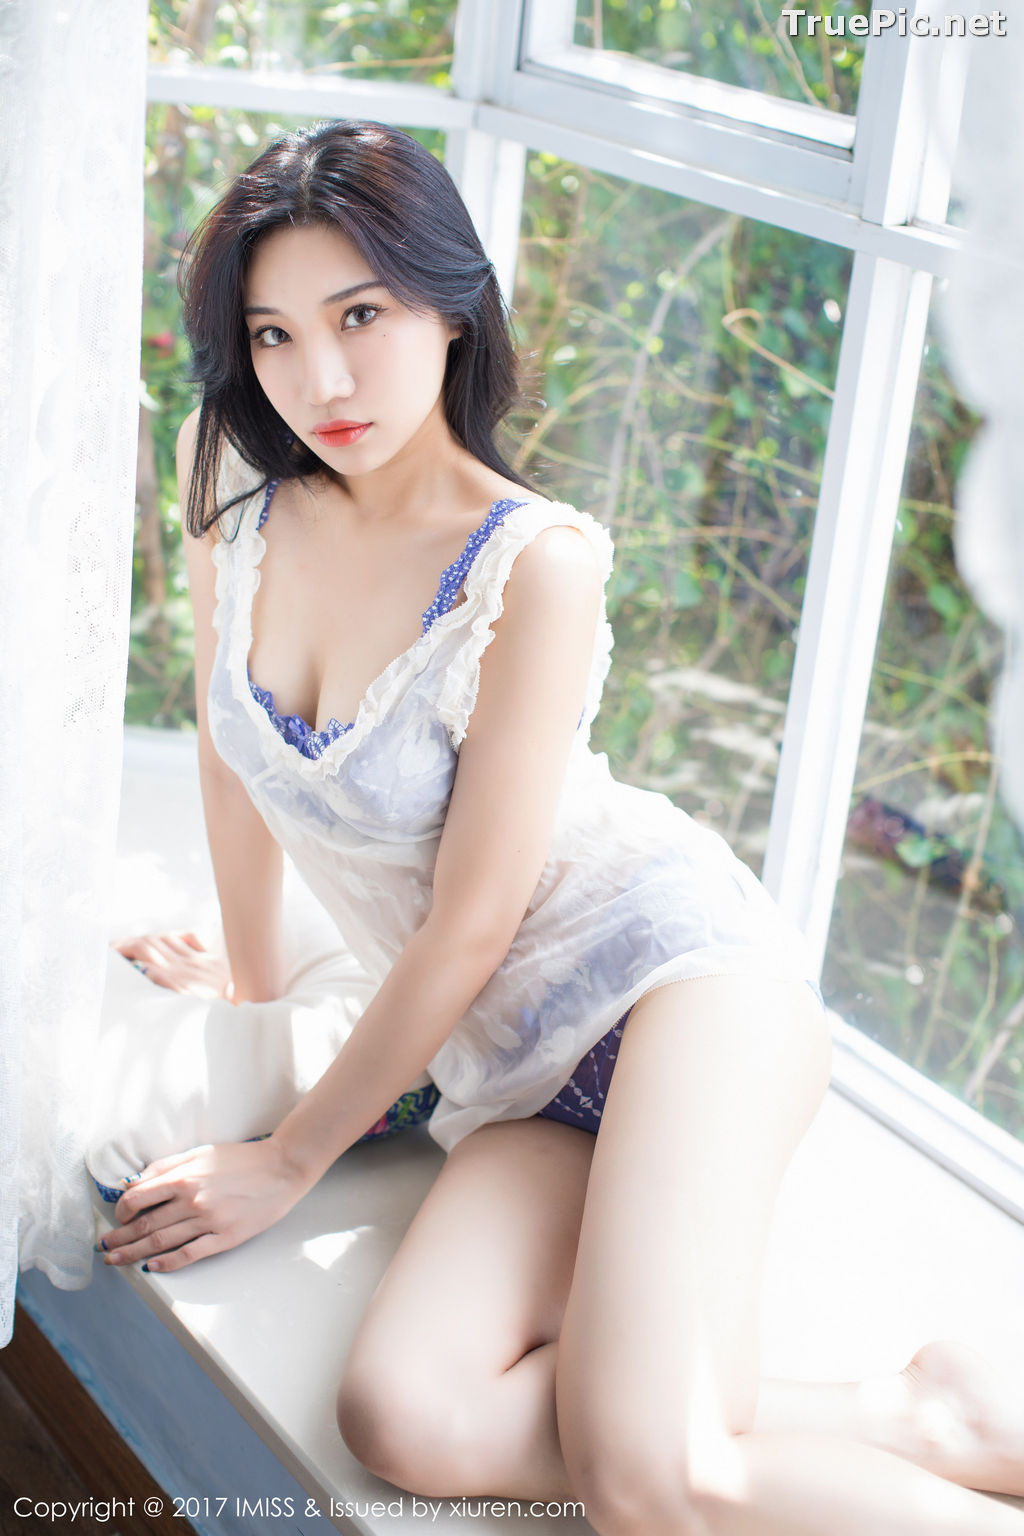 Image IMISS Vol.187 - Chinese Model Xiao Hu Li (小狐狸Sica) With Stockings Beautiful Legs - TruePic.net - Picture-7